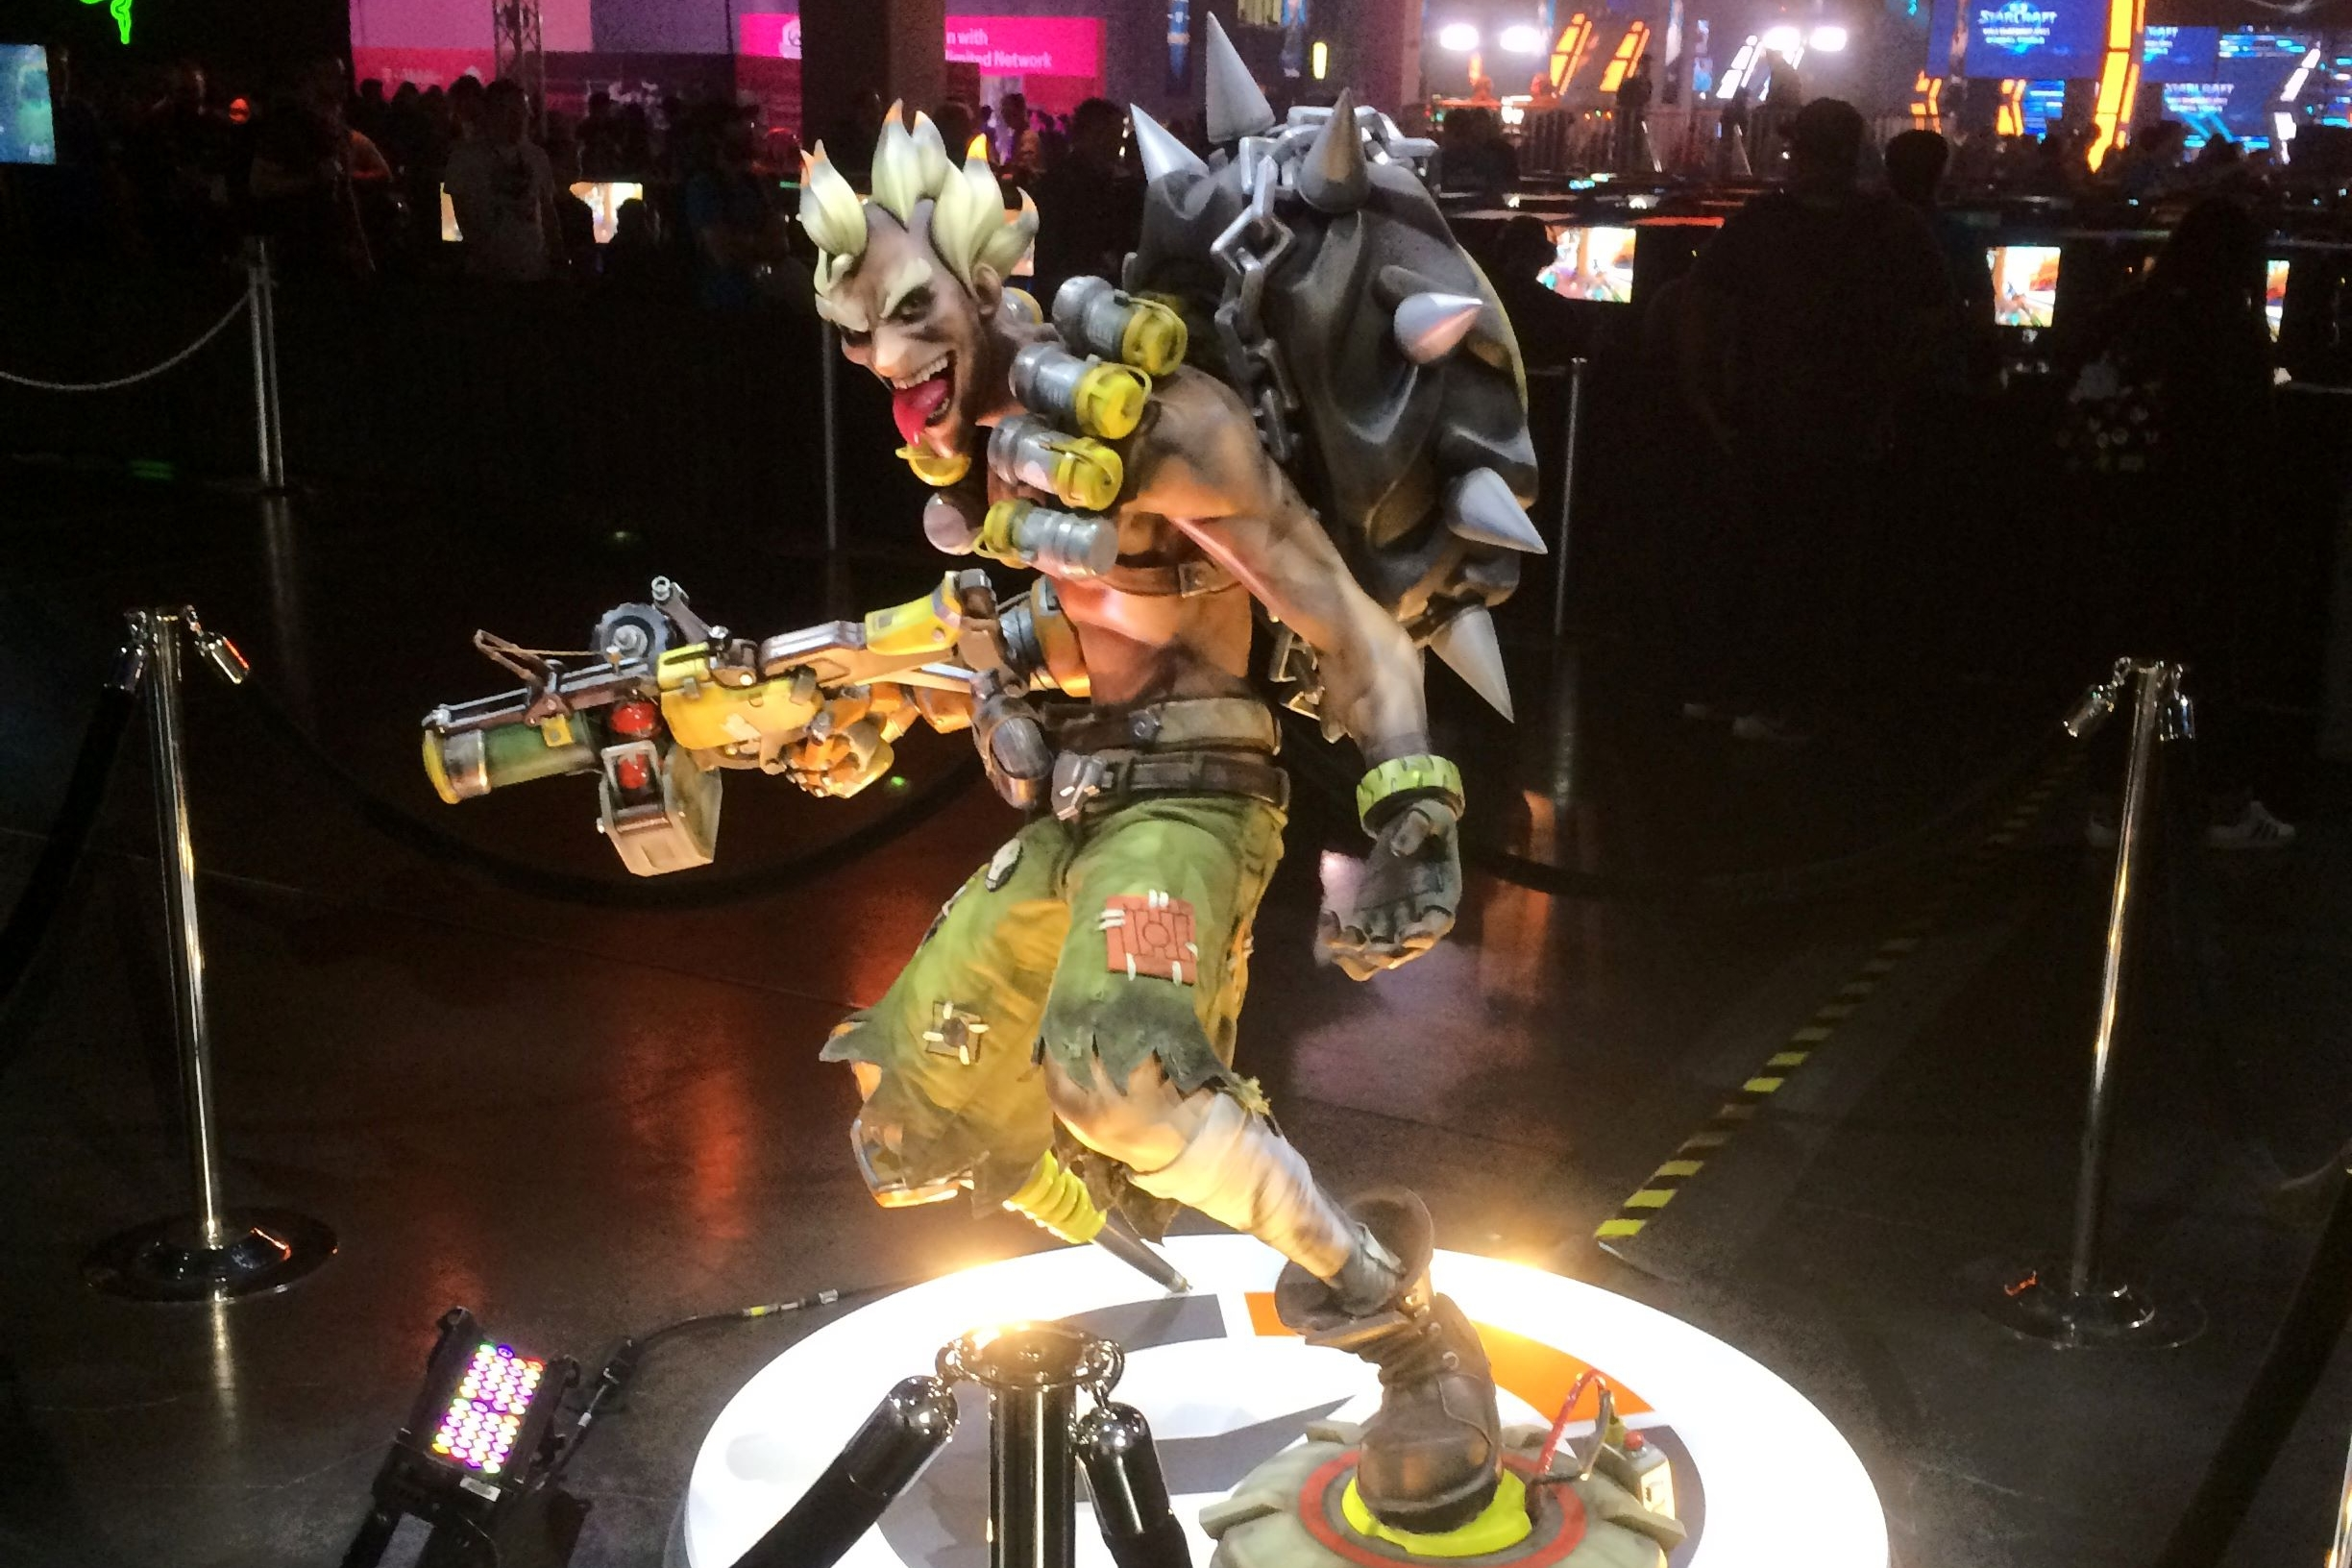 A Legendary BlizzCon Adventure: The BlizzCon 2017 Photo Gallery   Written by Shawn Hall